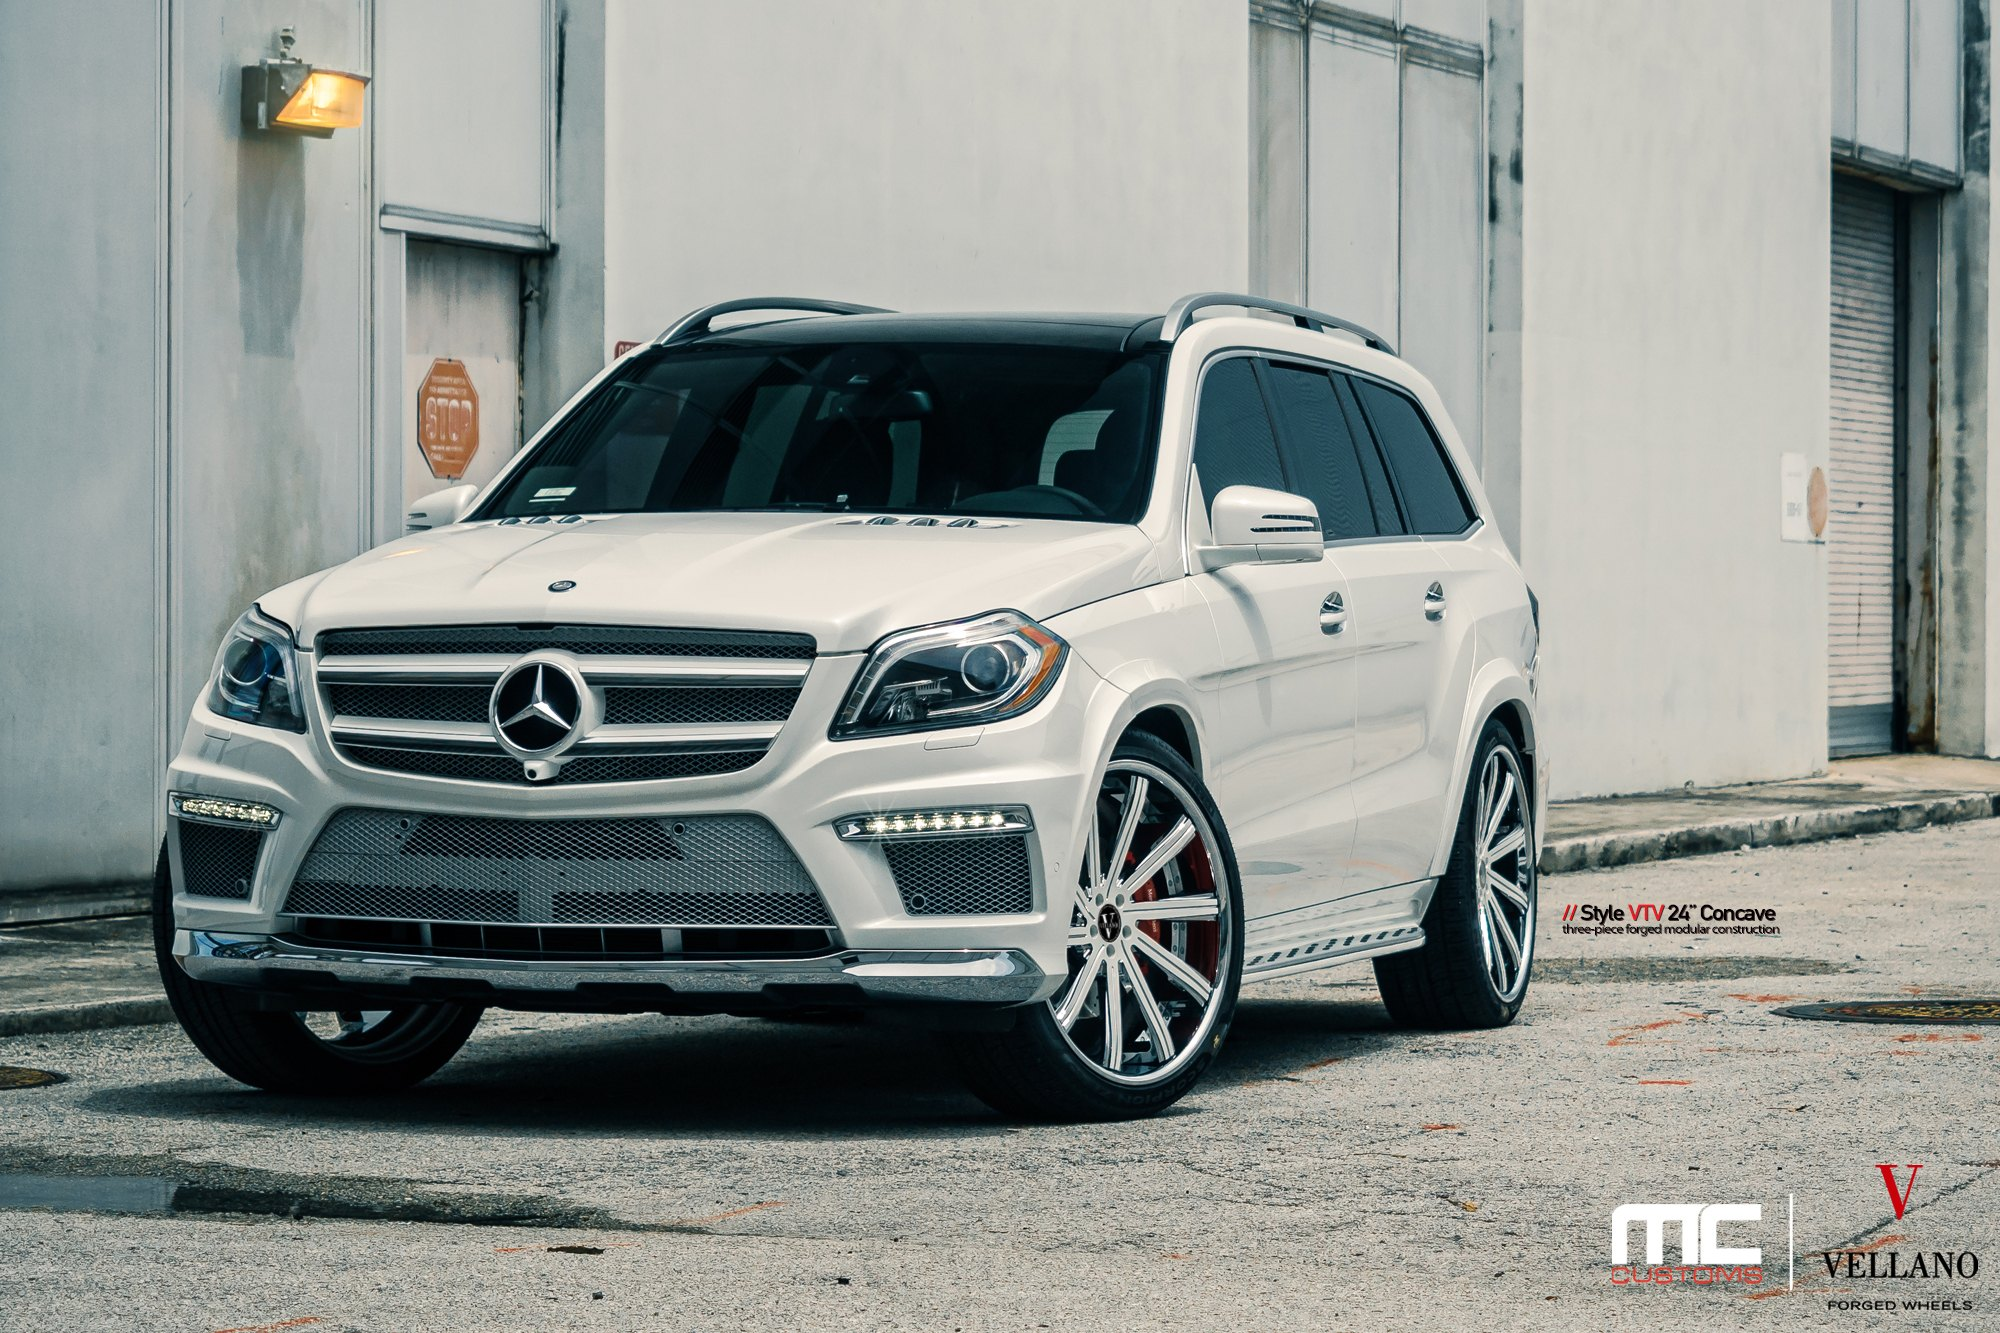 Front Per With Led Lights On White Mercedes Gl Cl Photo By Vellano